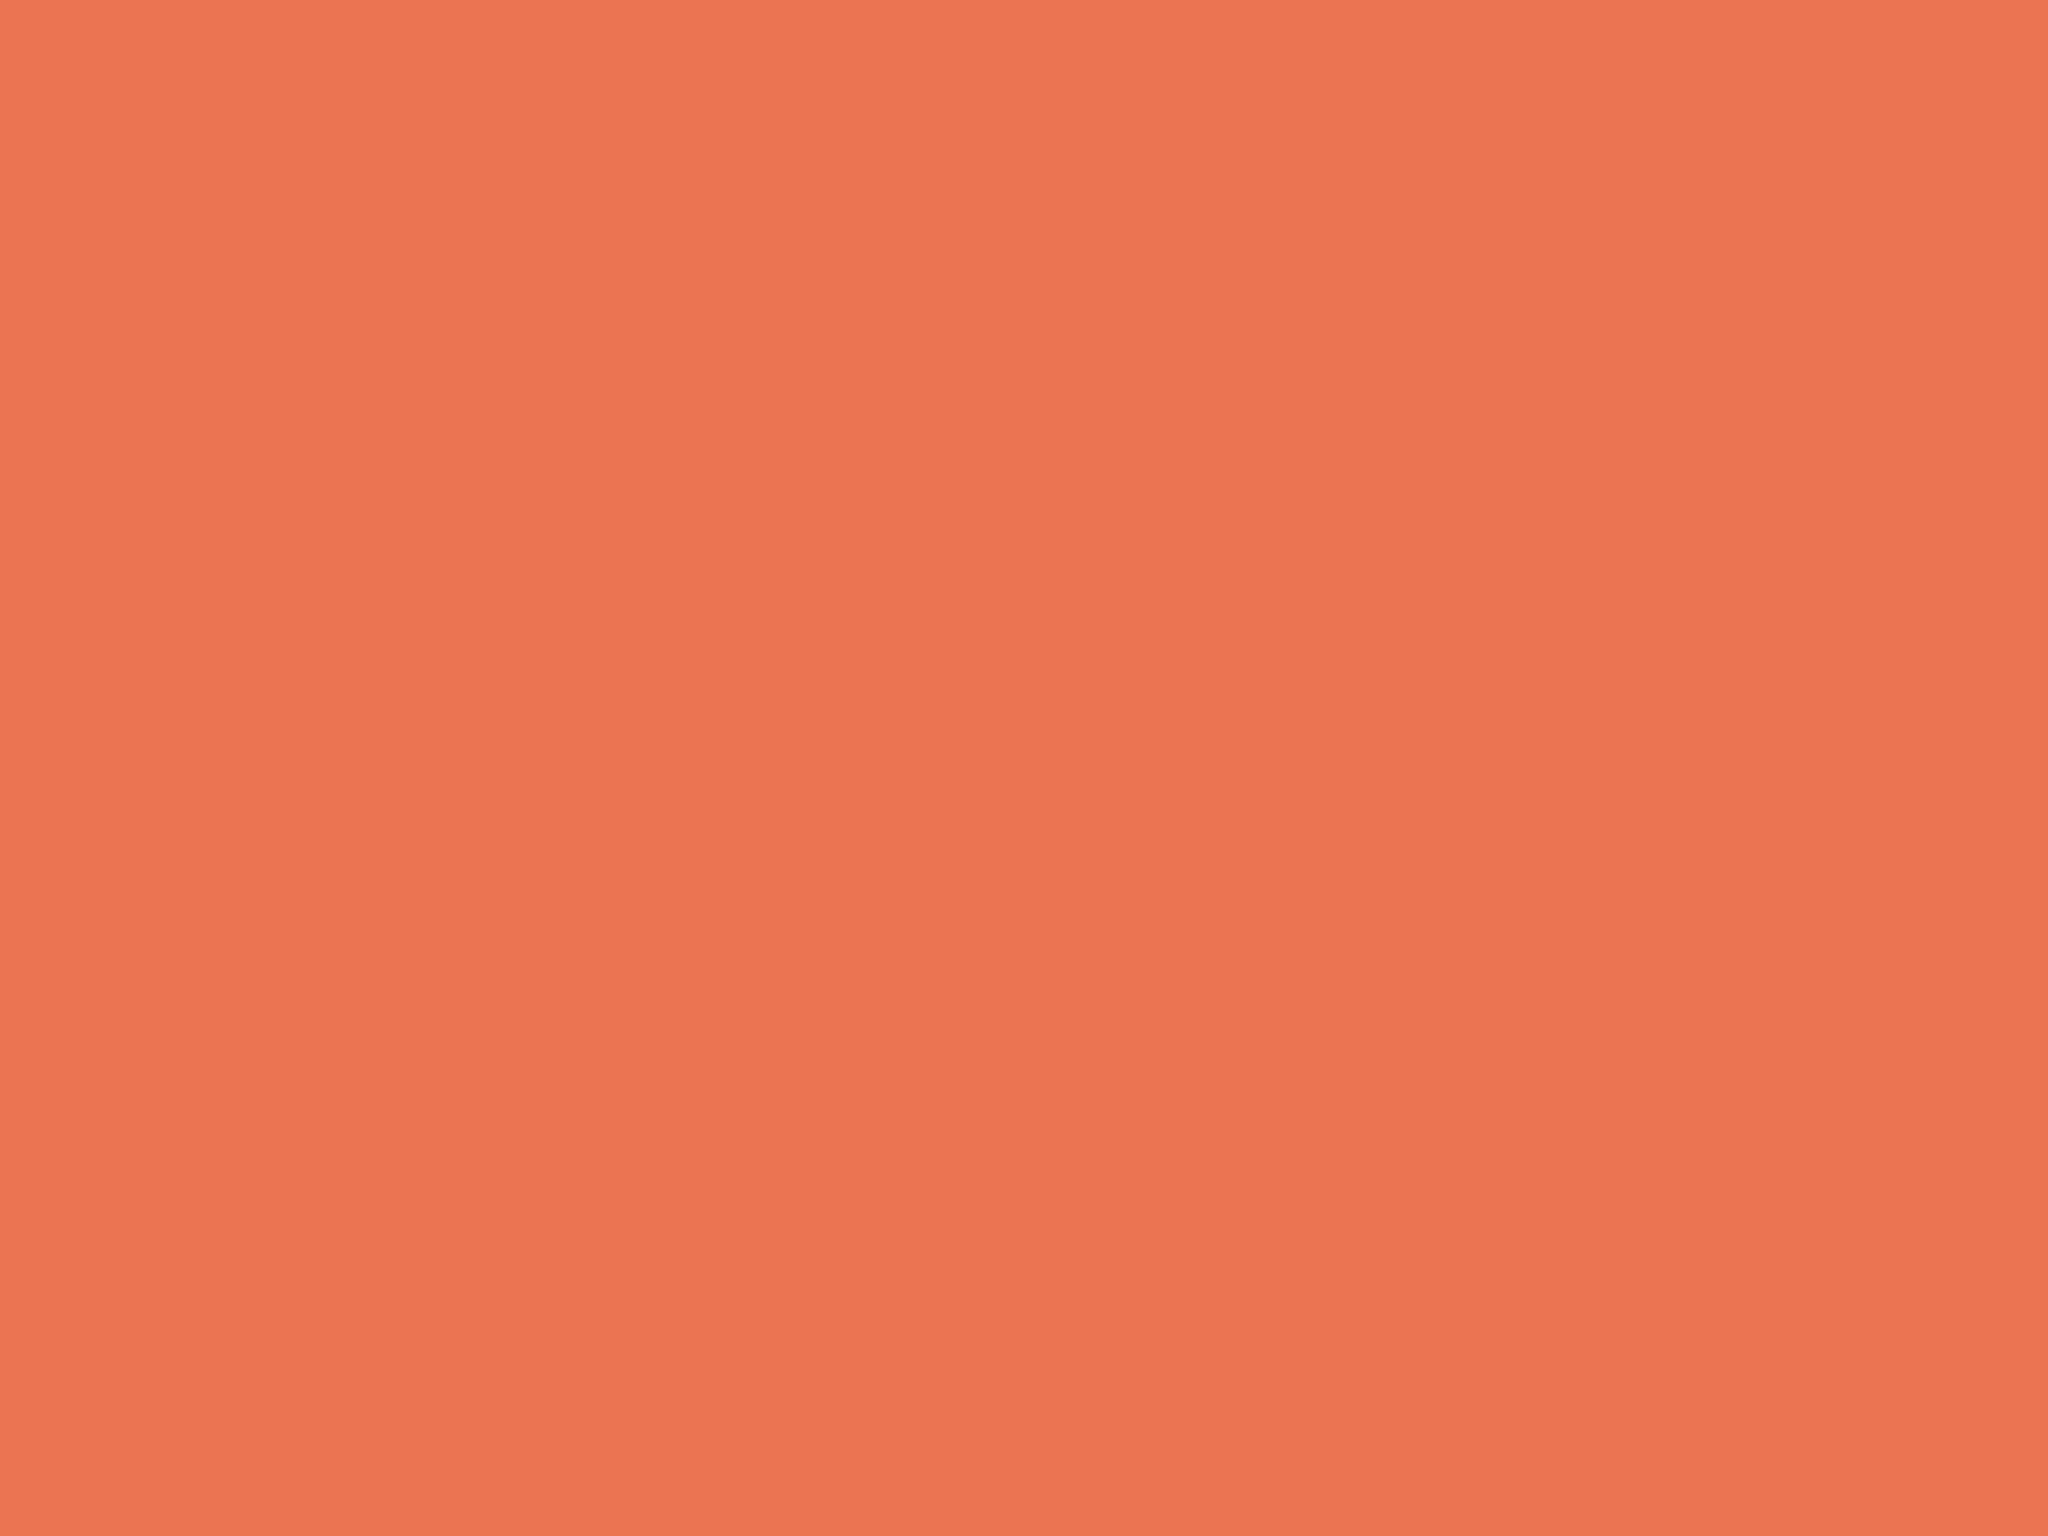 2048x1536 Burnt Sienna Solid Color Background